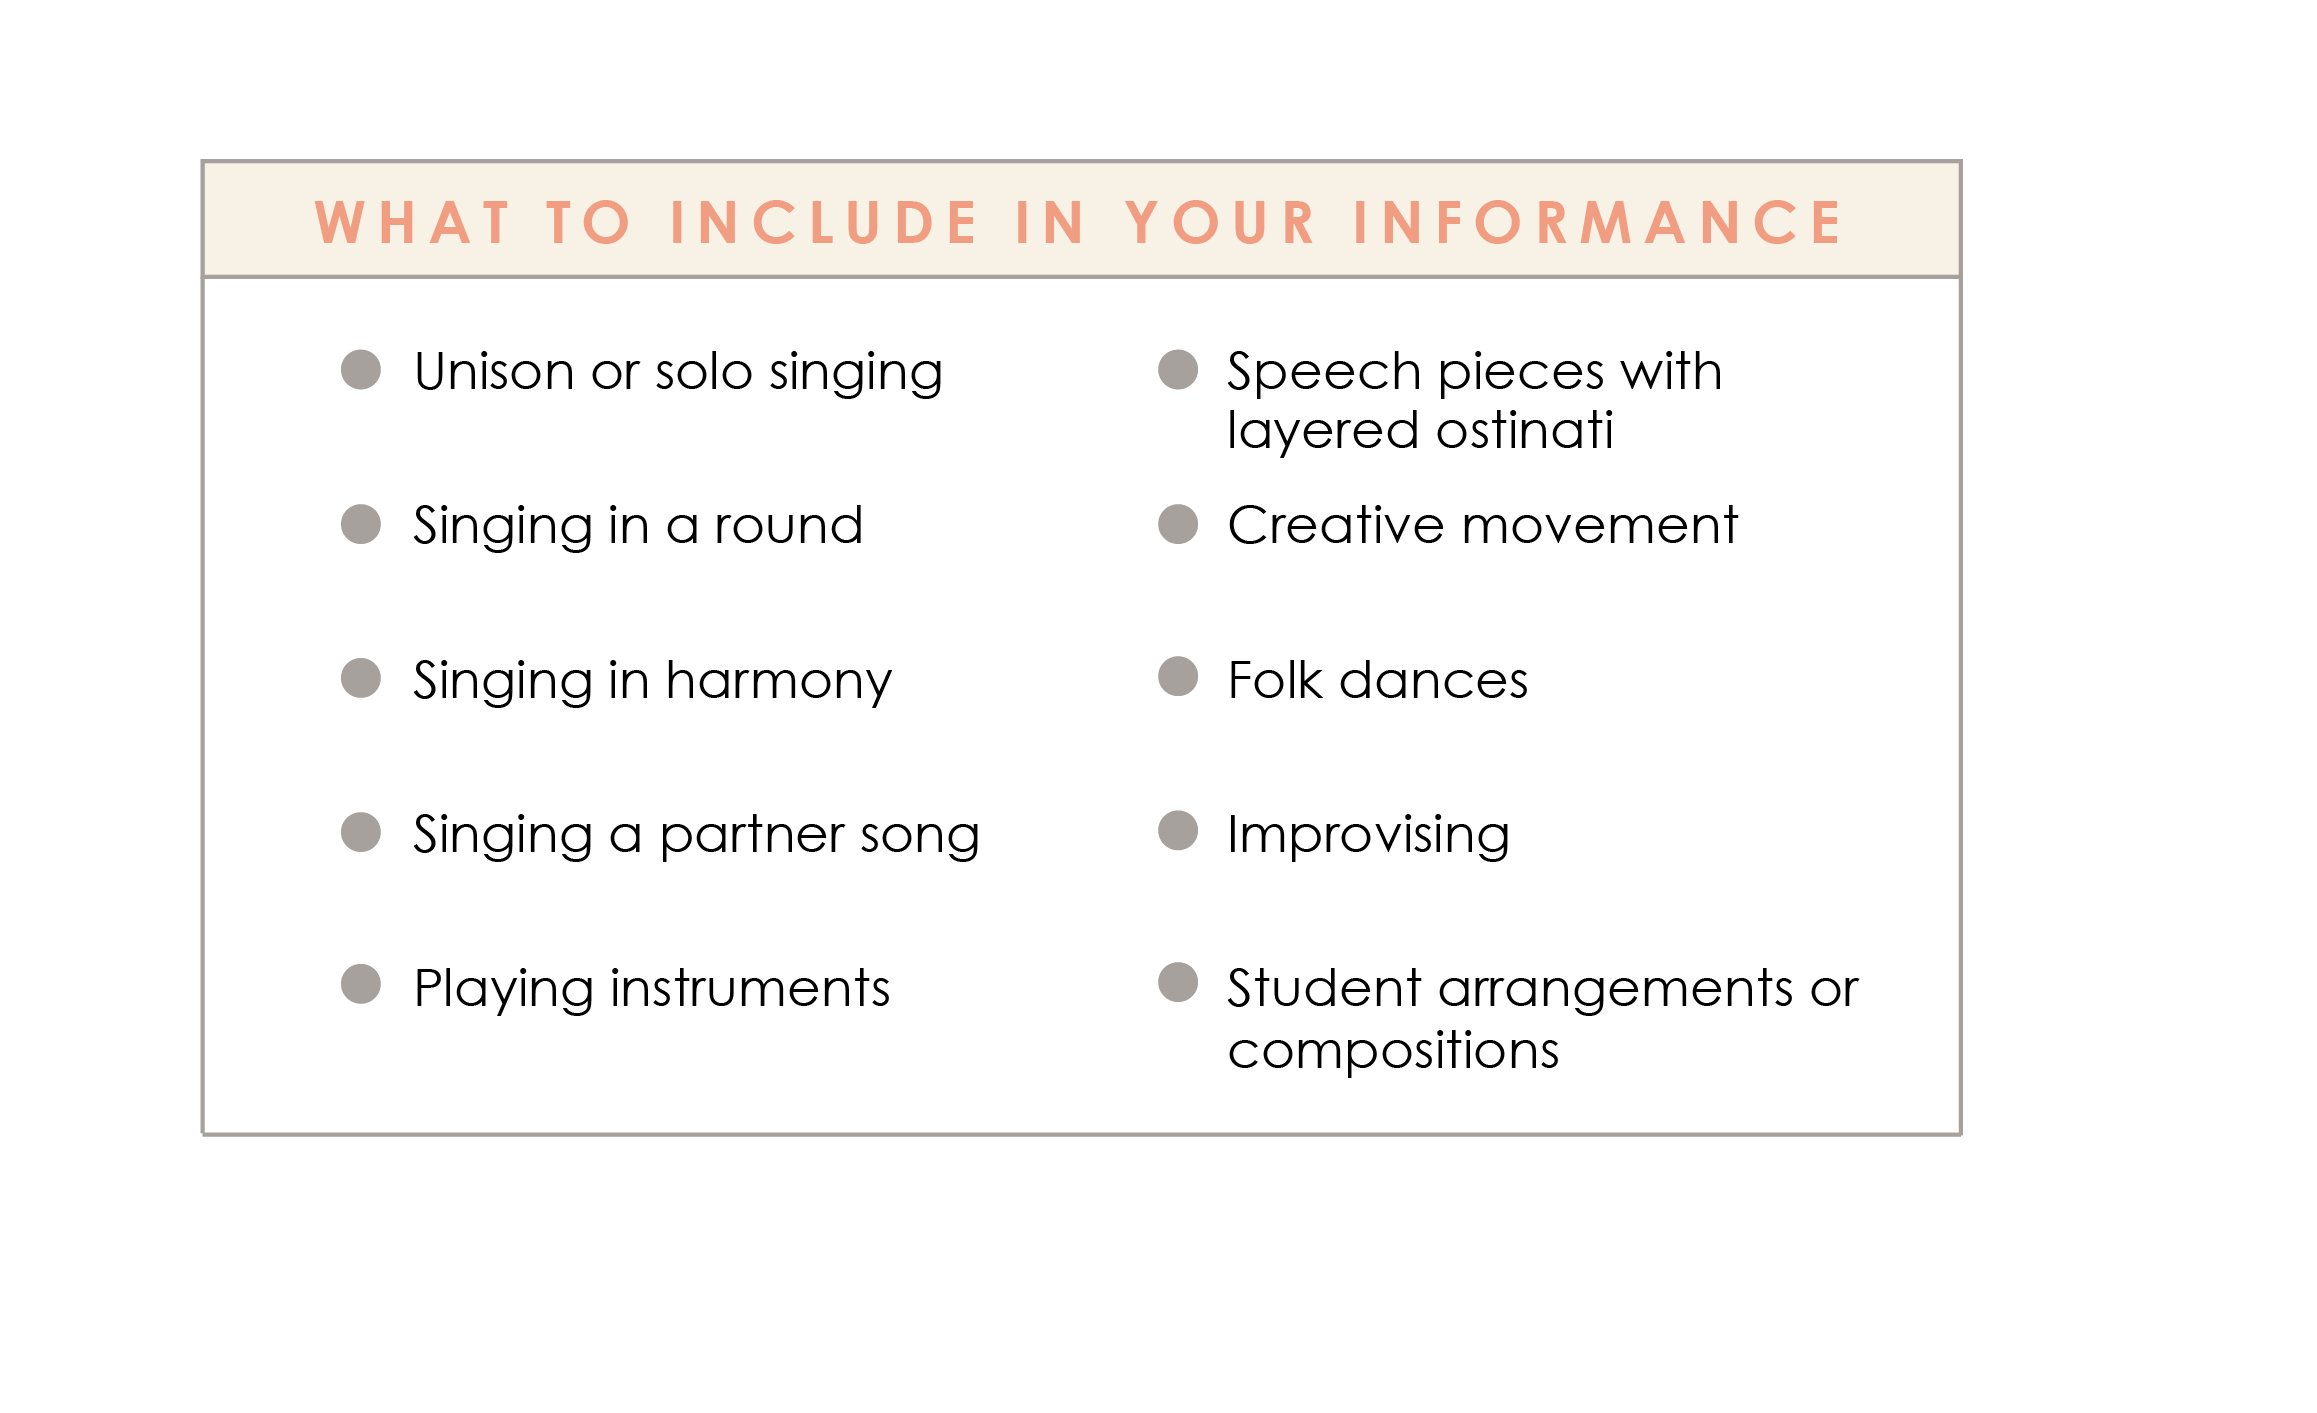 What to include in an informance